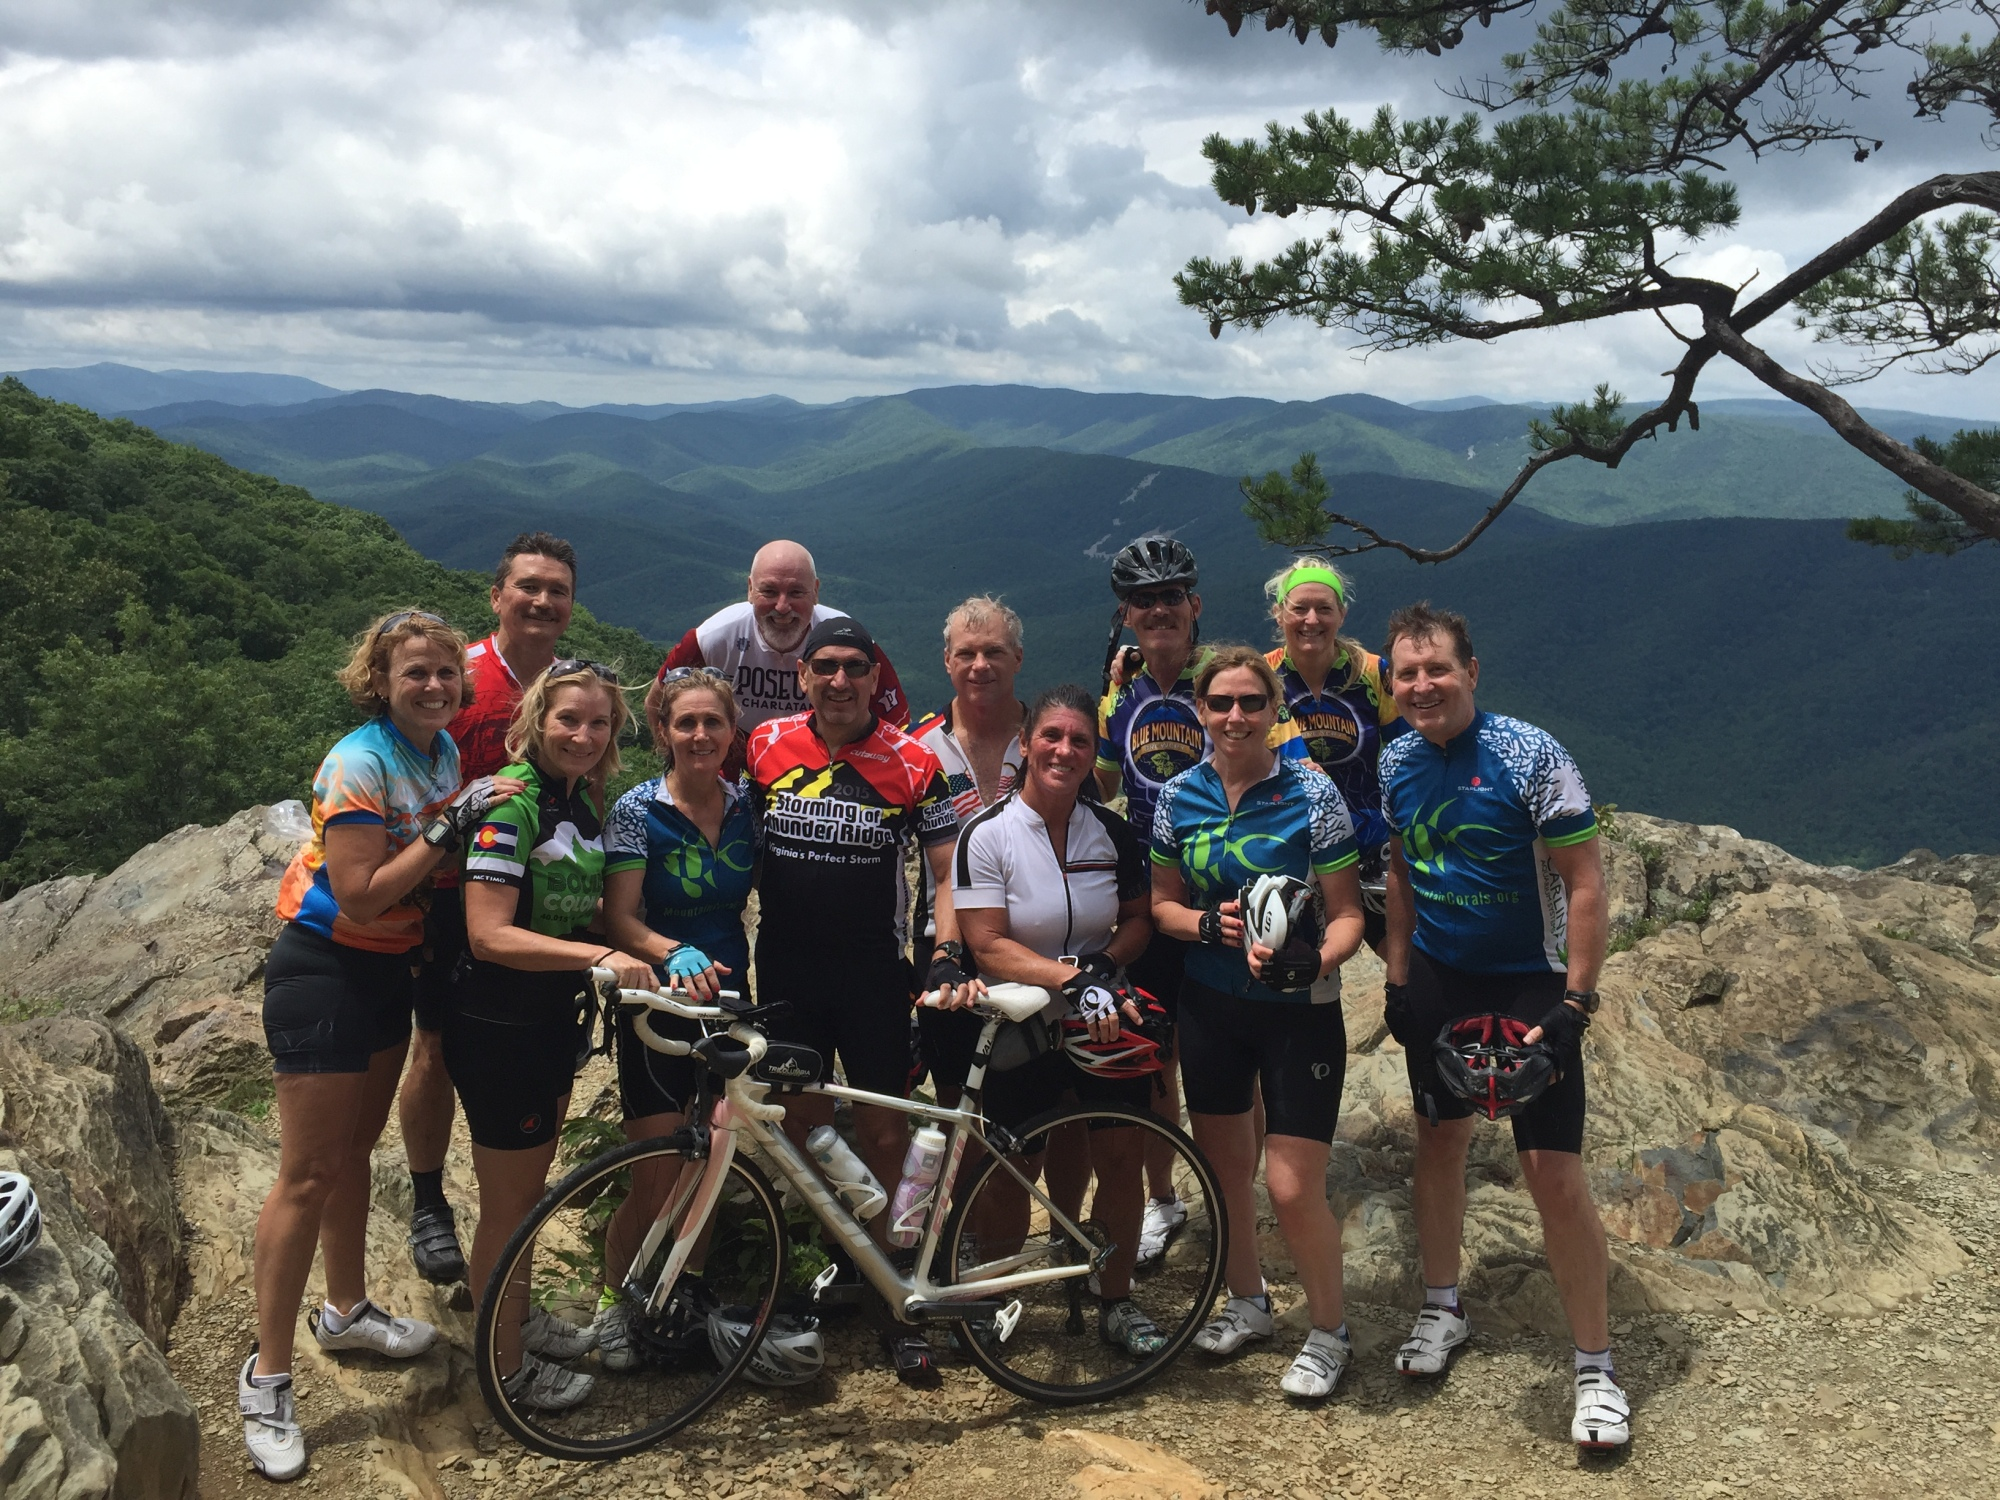 Happy cyclists at Raven's Roost overlook on the Blue Ridge Parkway near Wintergreen.